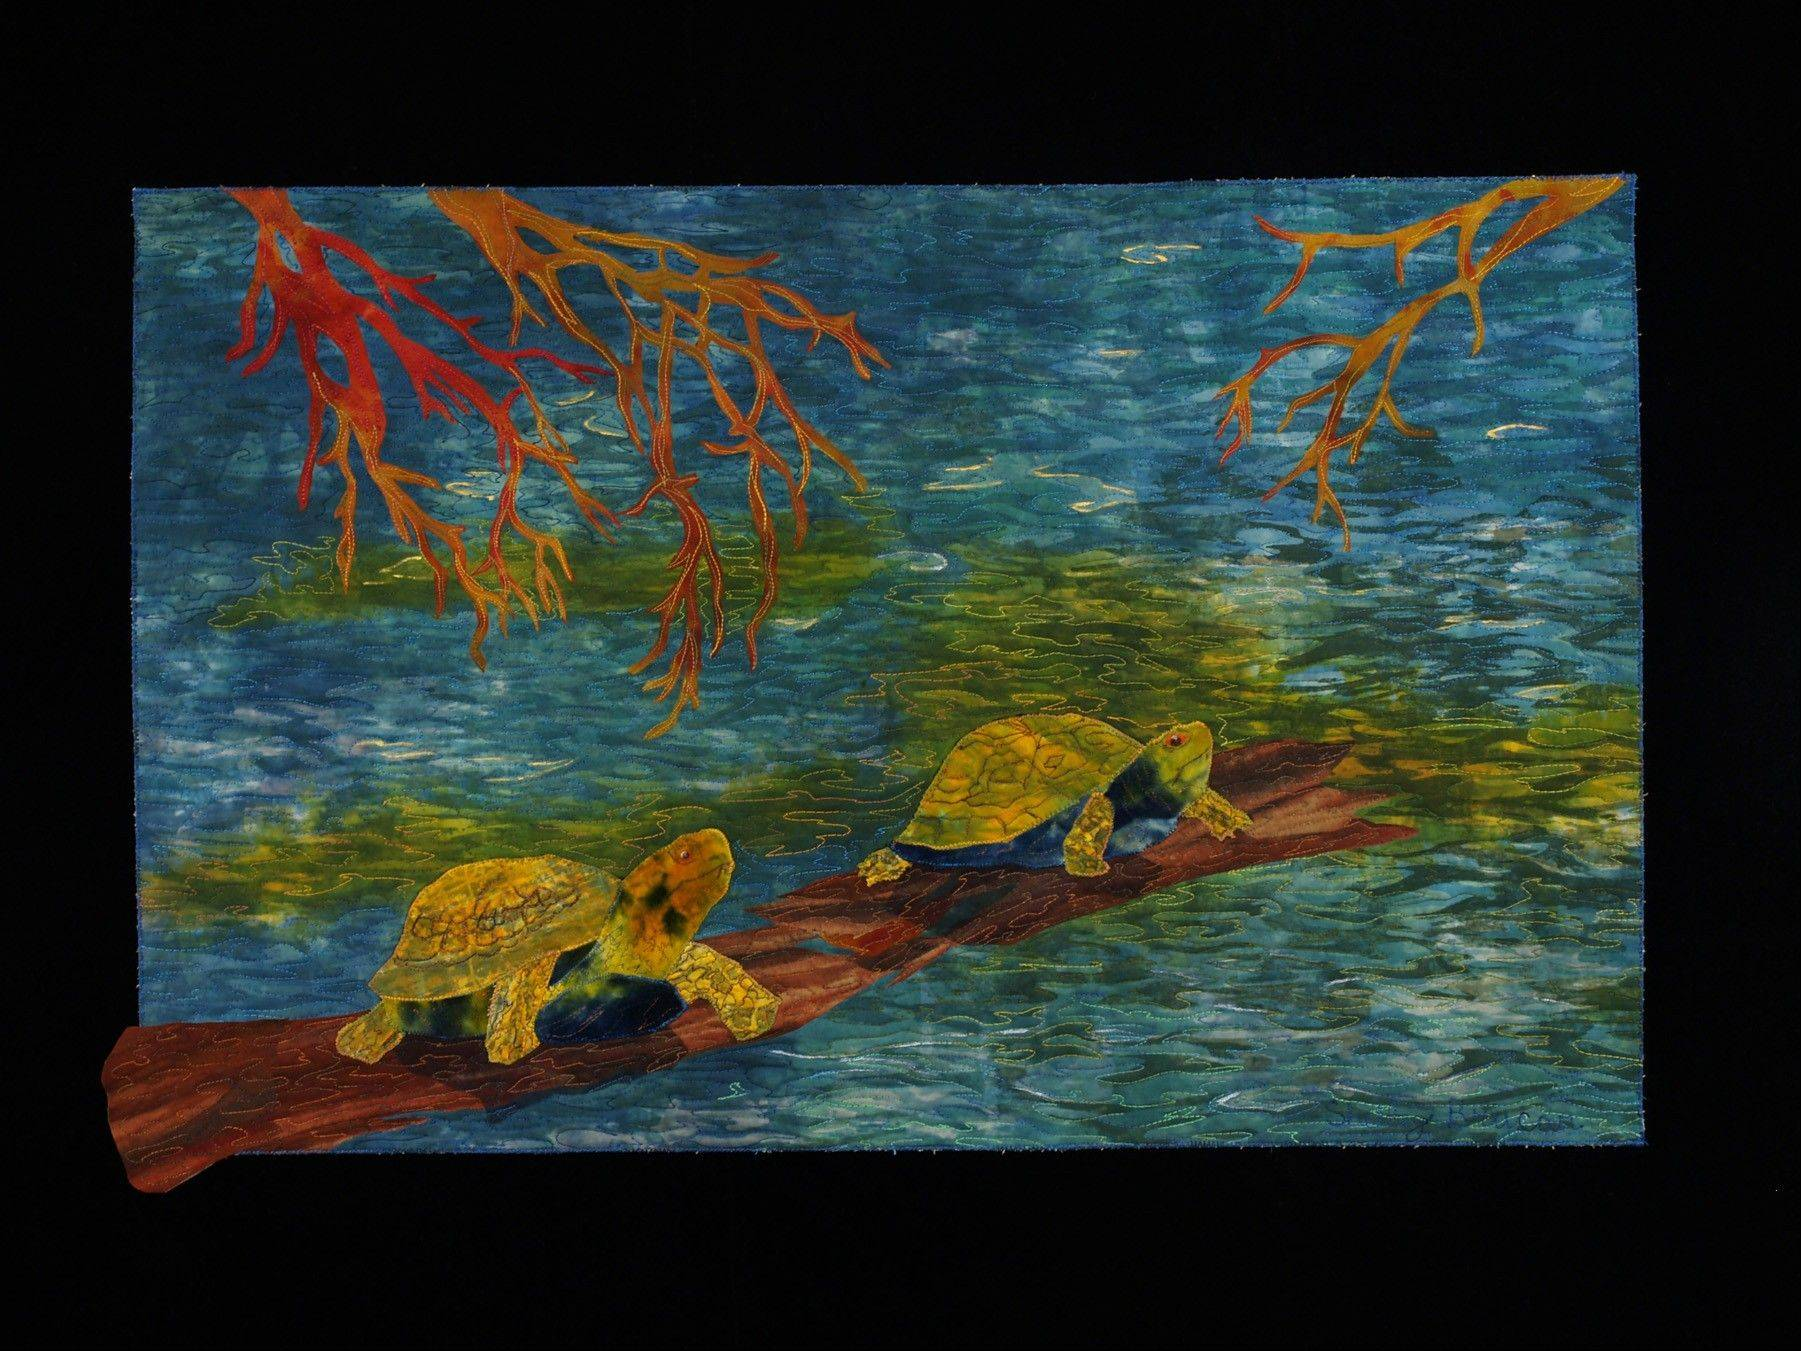 """Turtle Crossing III"" was made by Shelley Brucar."